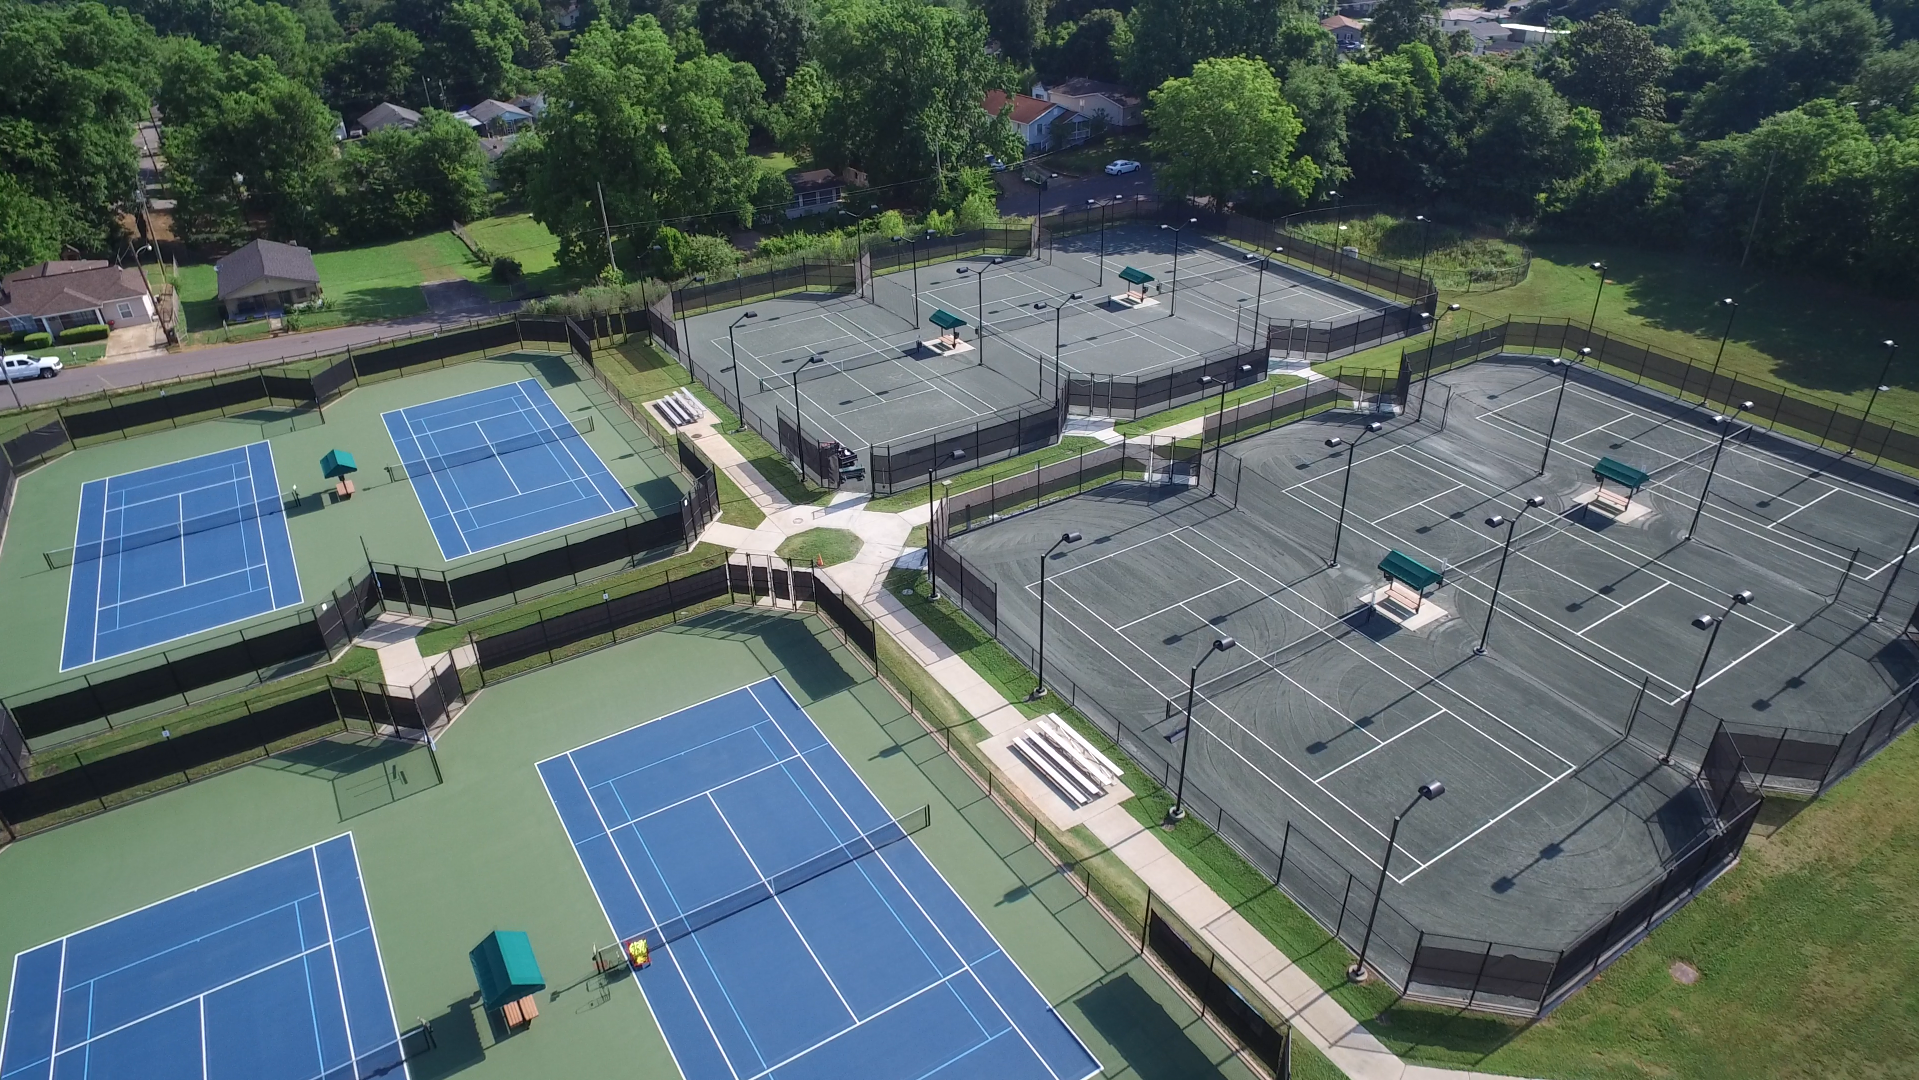 Aerial of Tennis Center Courts